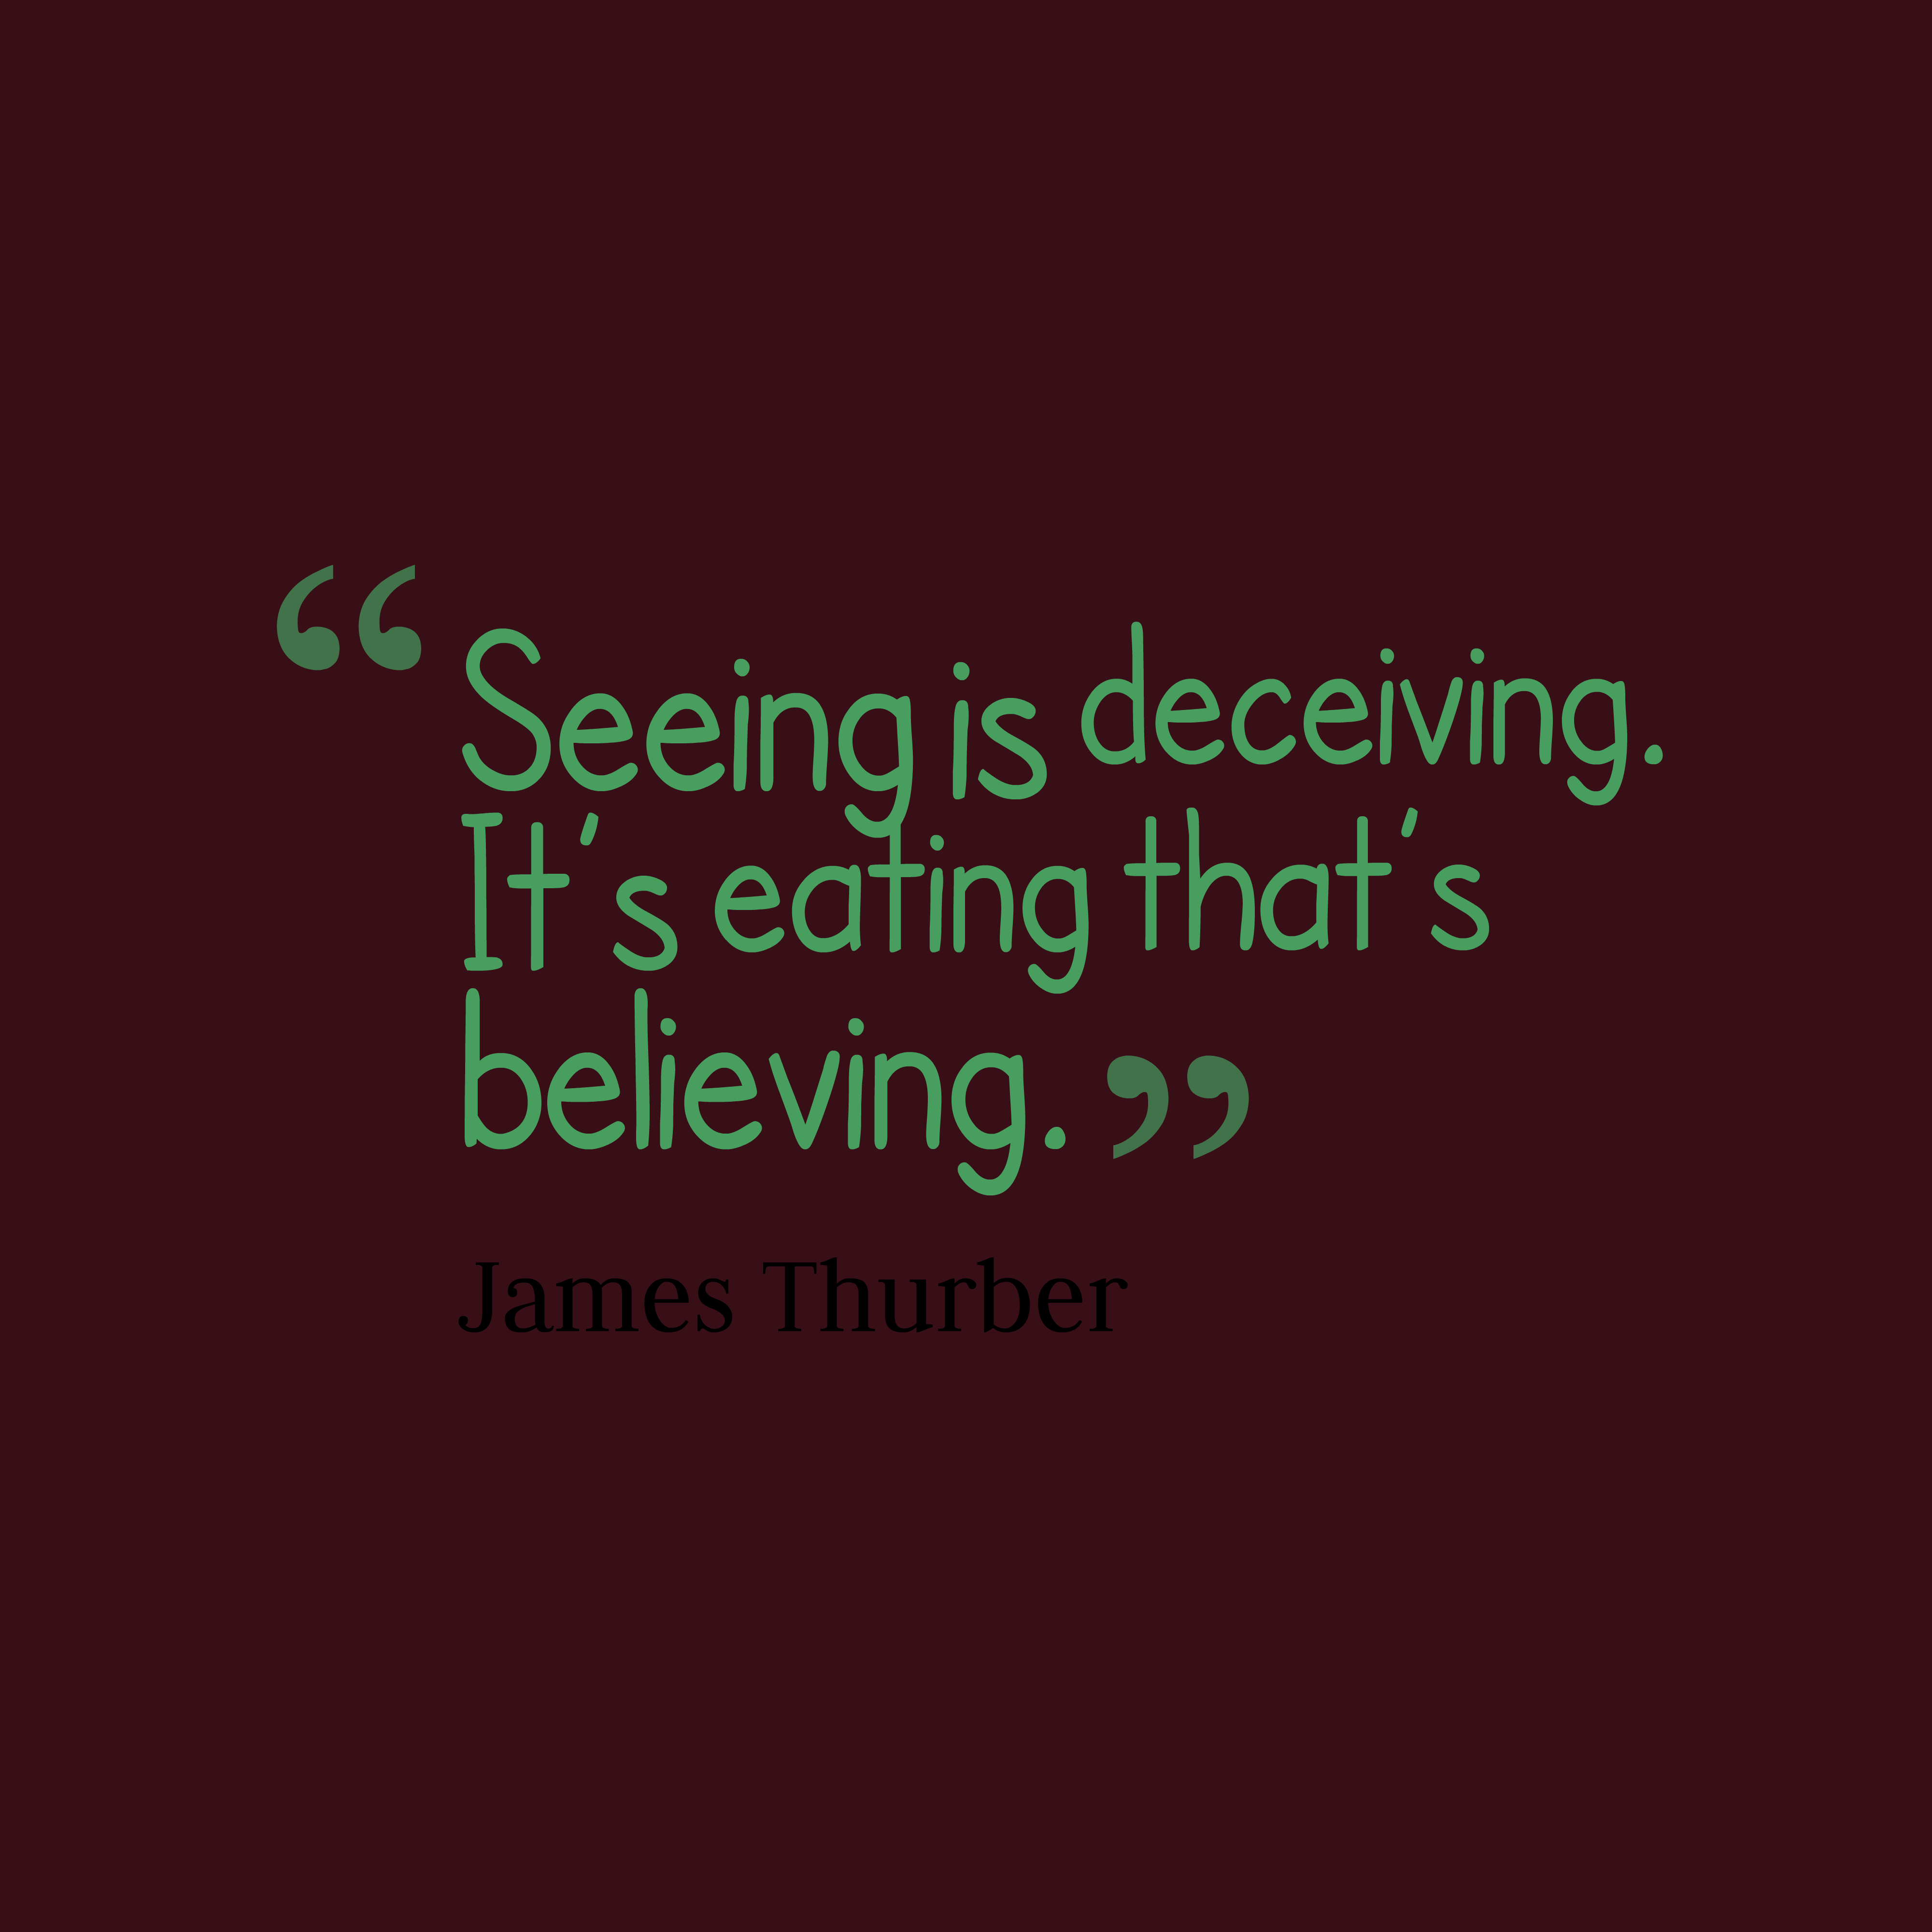 Quotes image of Seeing is deceiving. It's eating that's believing.